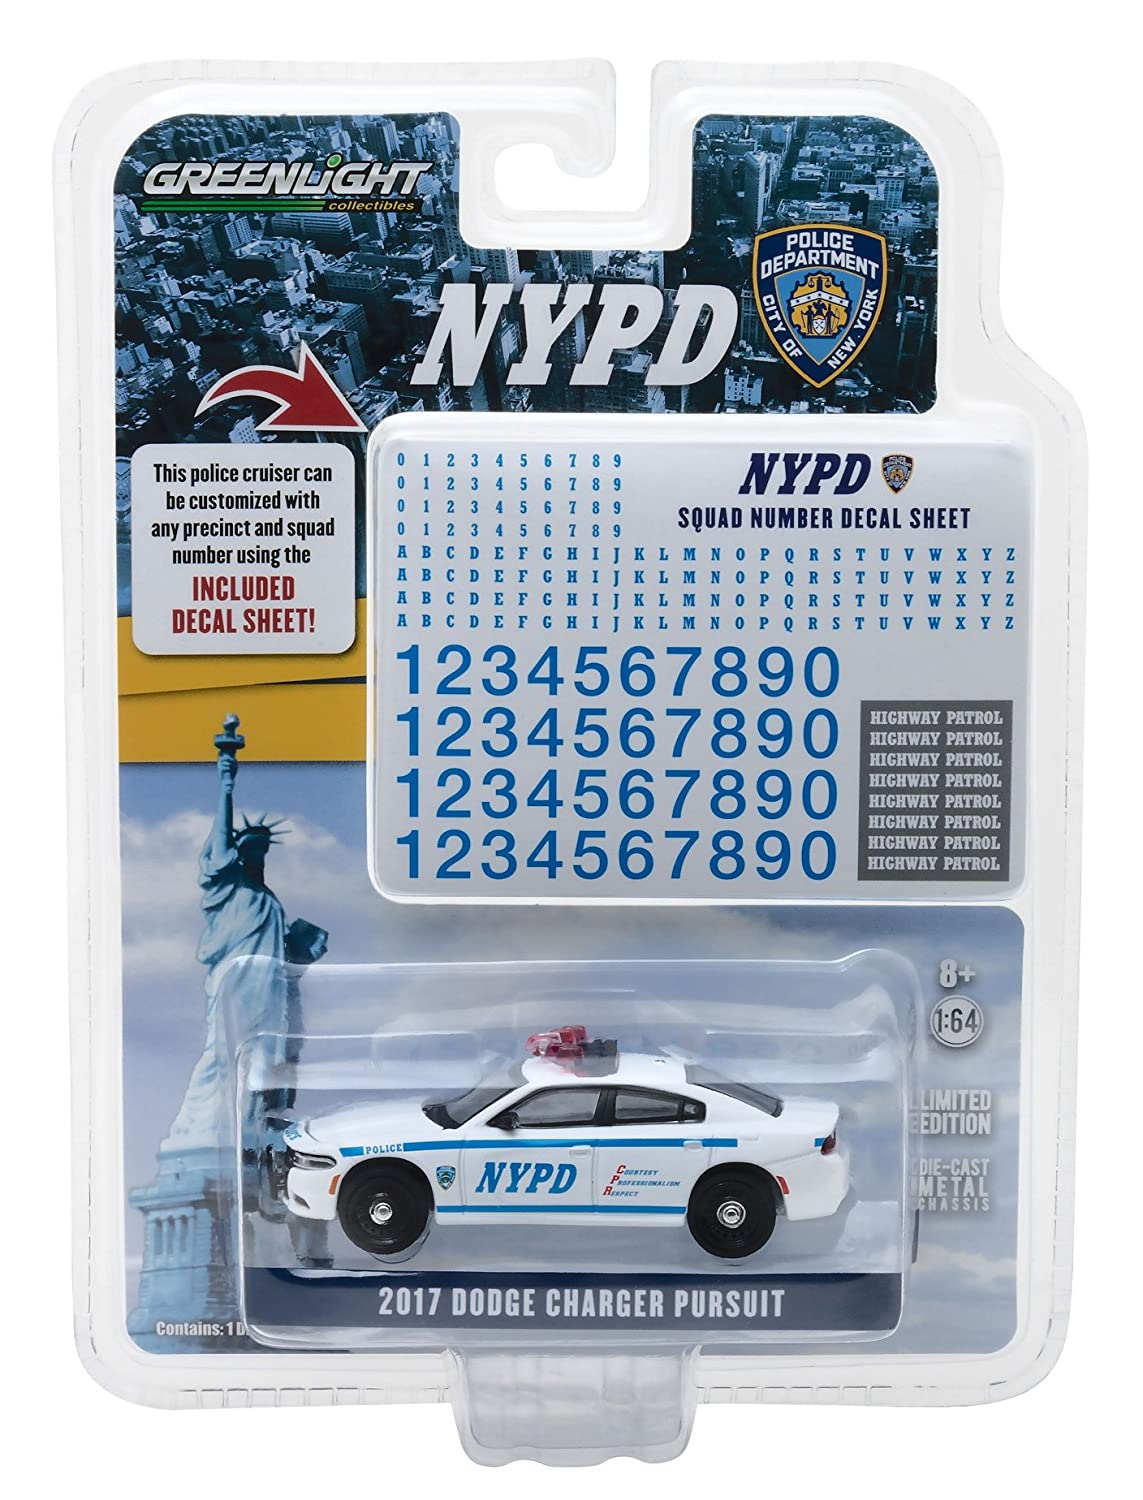 Greenlight 42821 2017 Dodge Charger Pursuit Police New York Police  Department (NYPD) with NYPD Squad Number Decal Sheet Hobby Exclusive 1/64  Diecast